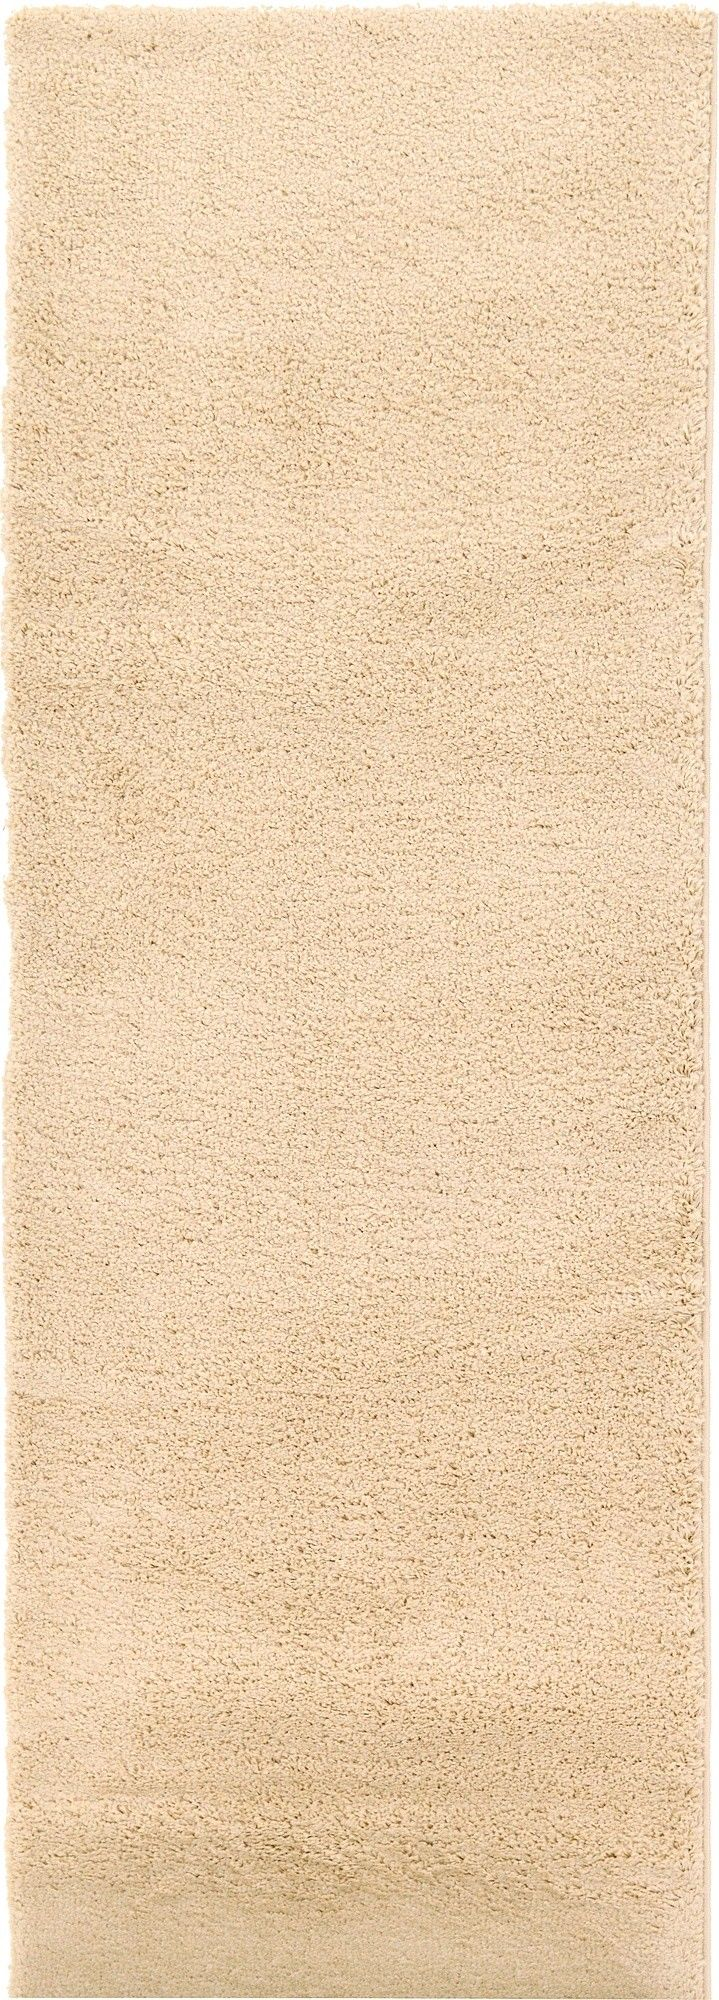 Korkboden Creme Bixler Frieze Basic Cream Area Rug Products Korkboden